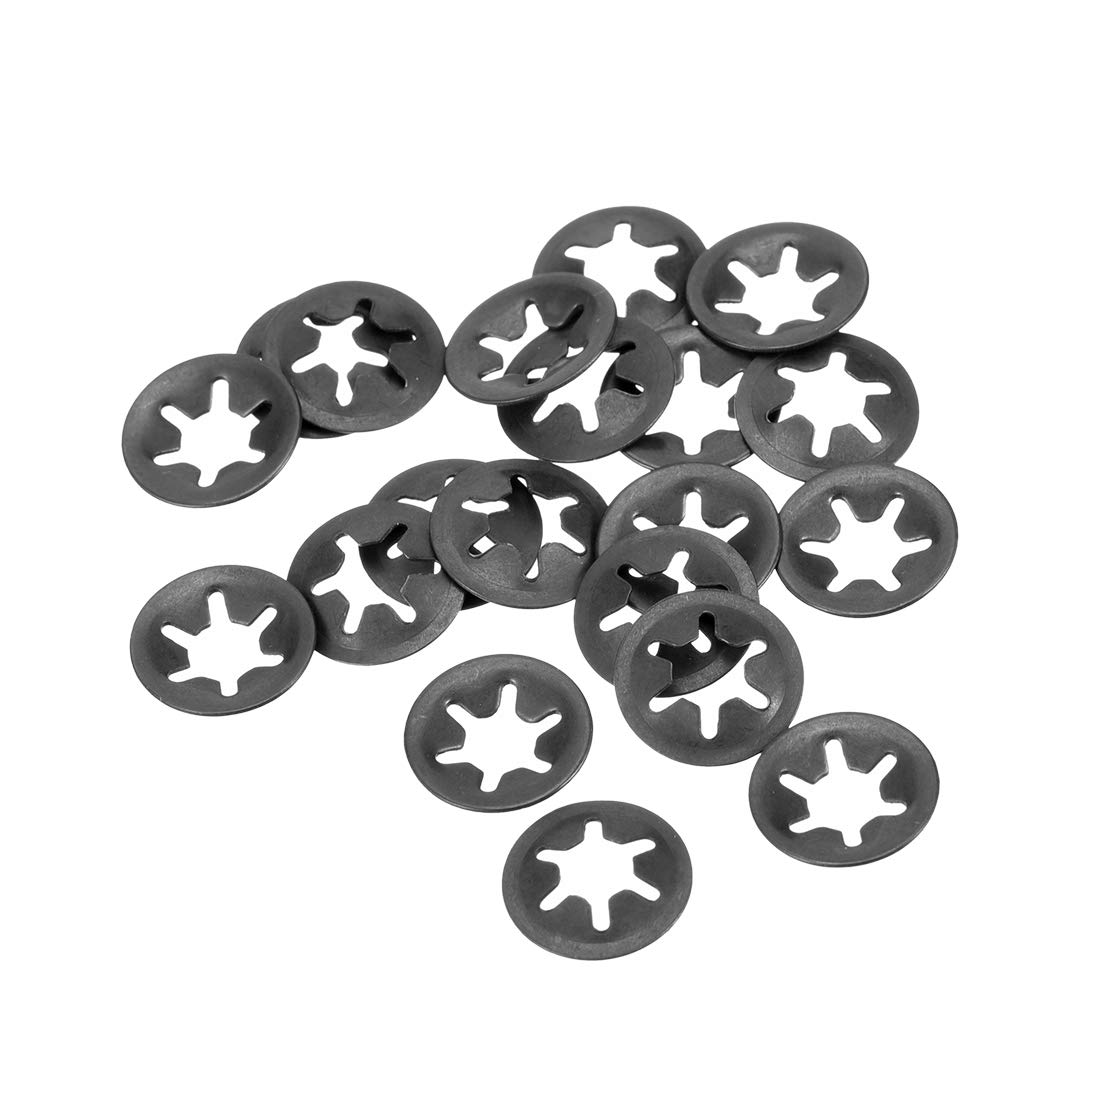 uxcell M5 Internal Tooth Starlock Washer 4.3mm I.D. 12mm O.D. Lock Washers Push On Locking Speed Clip 65Mn Black Oxide Finish Pack of 20